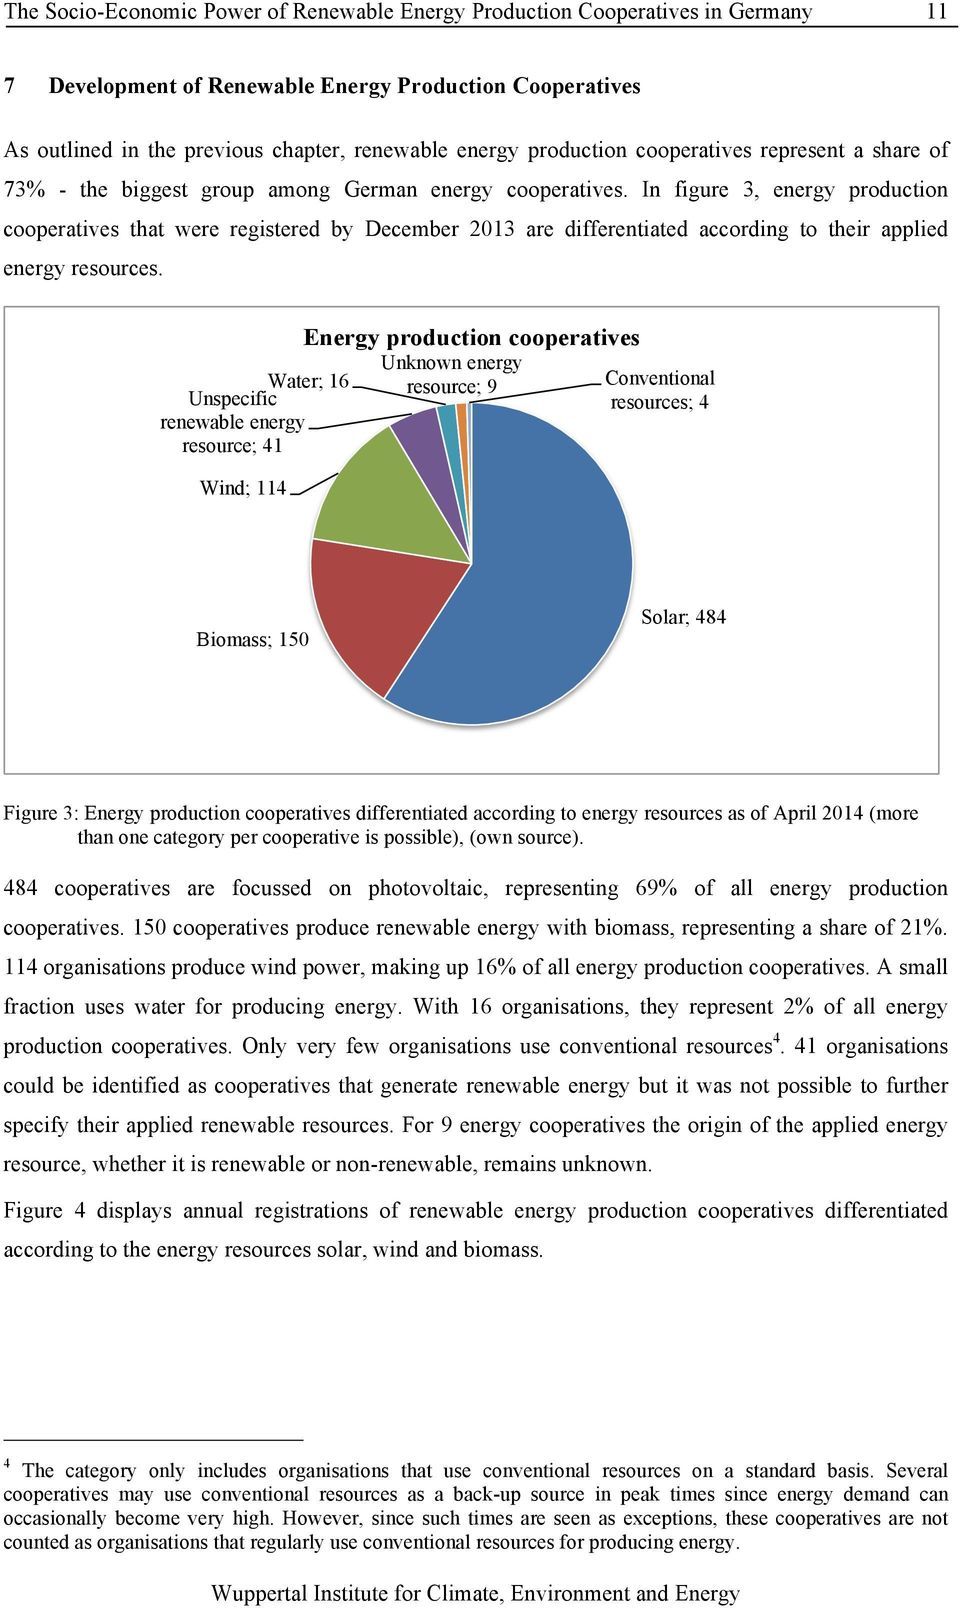 In figure 3, energy production cooperatives that were registered by December 2013 are differentiated according to their applied energy resources.